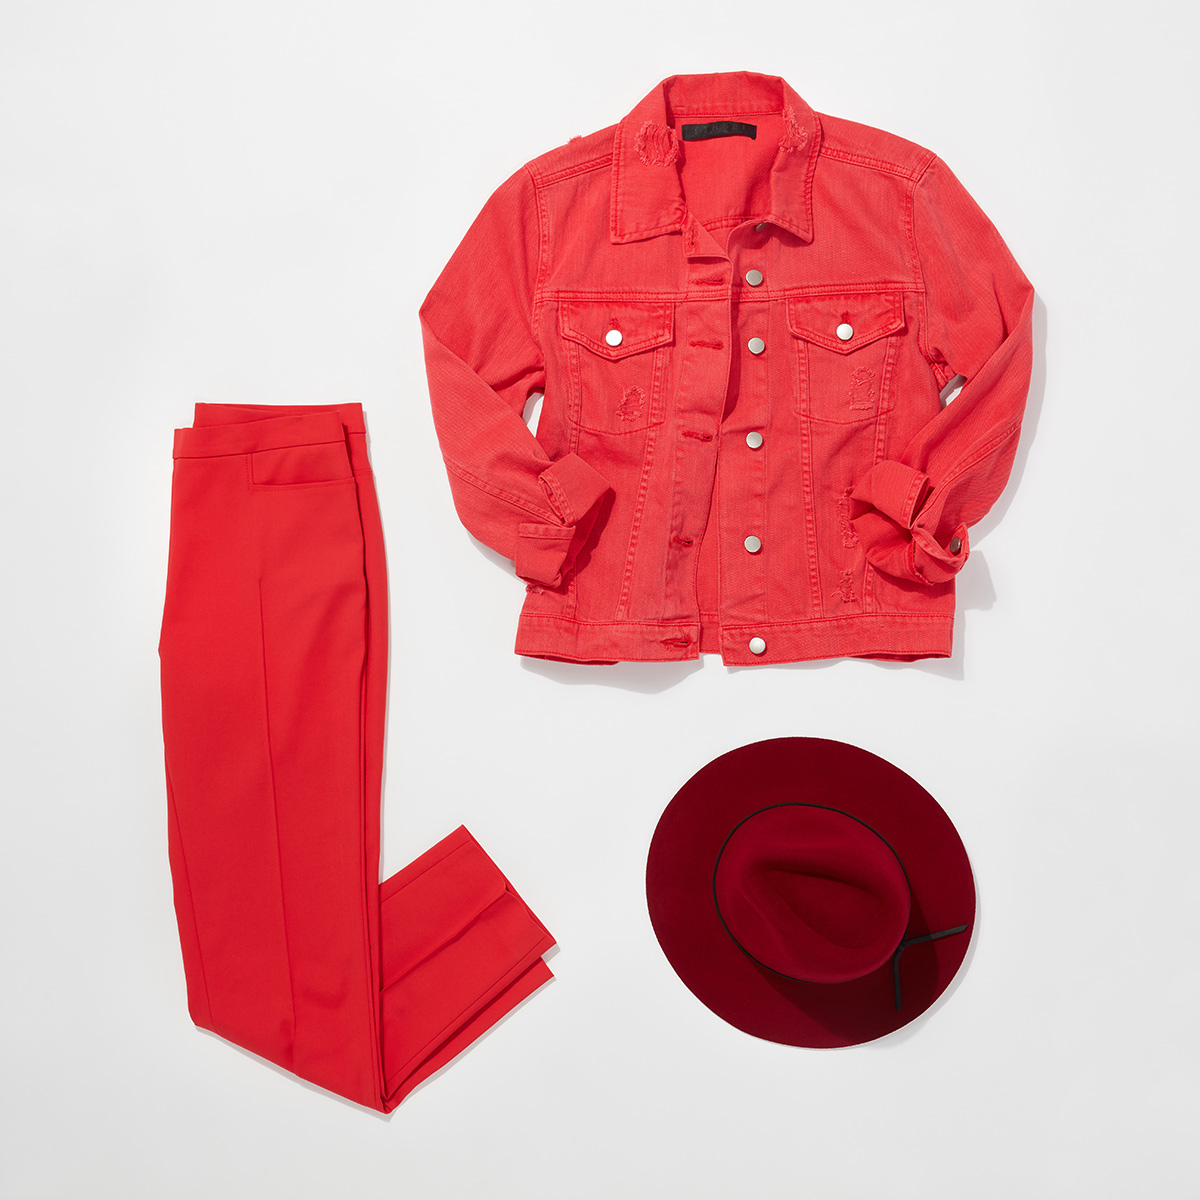 Three articles of red clothing - a red jean jacket, red slacks, and a dark red fabric hat arranged neatly on a white background.